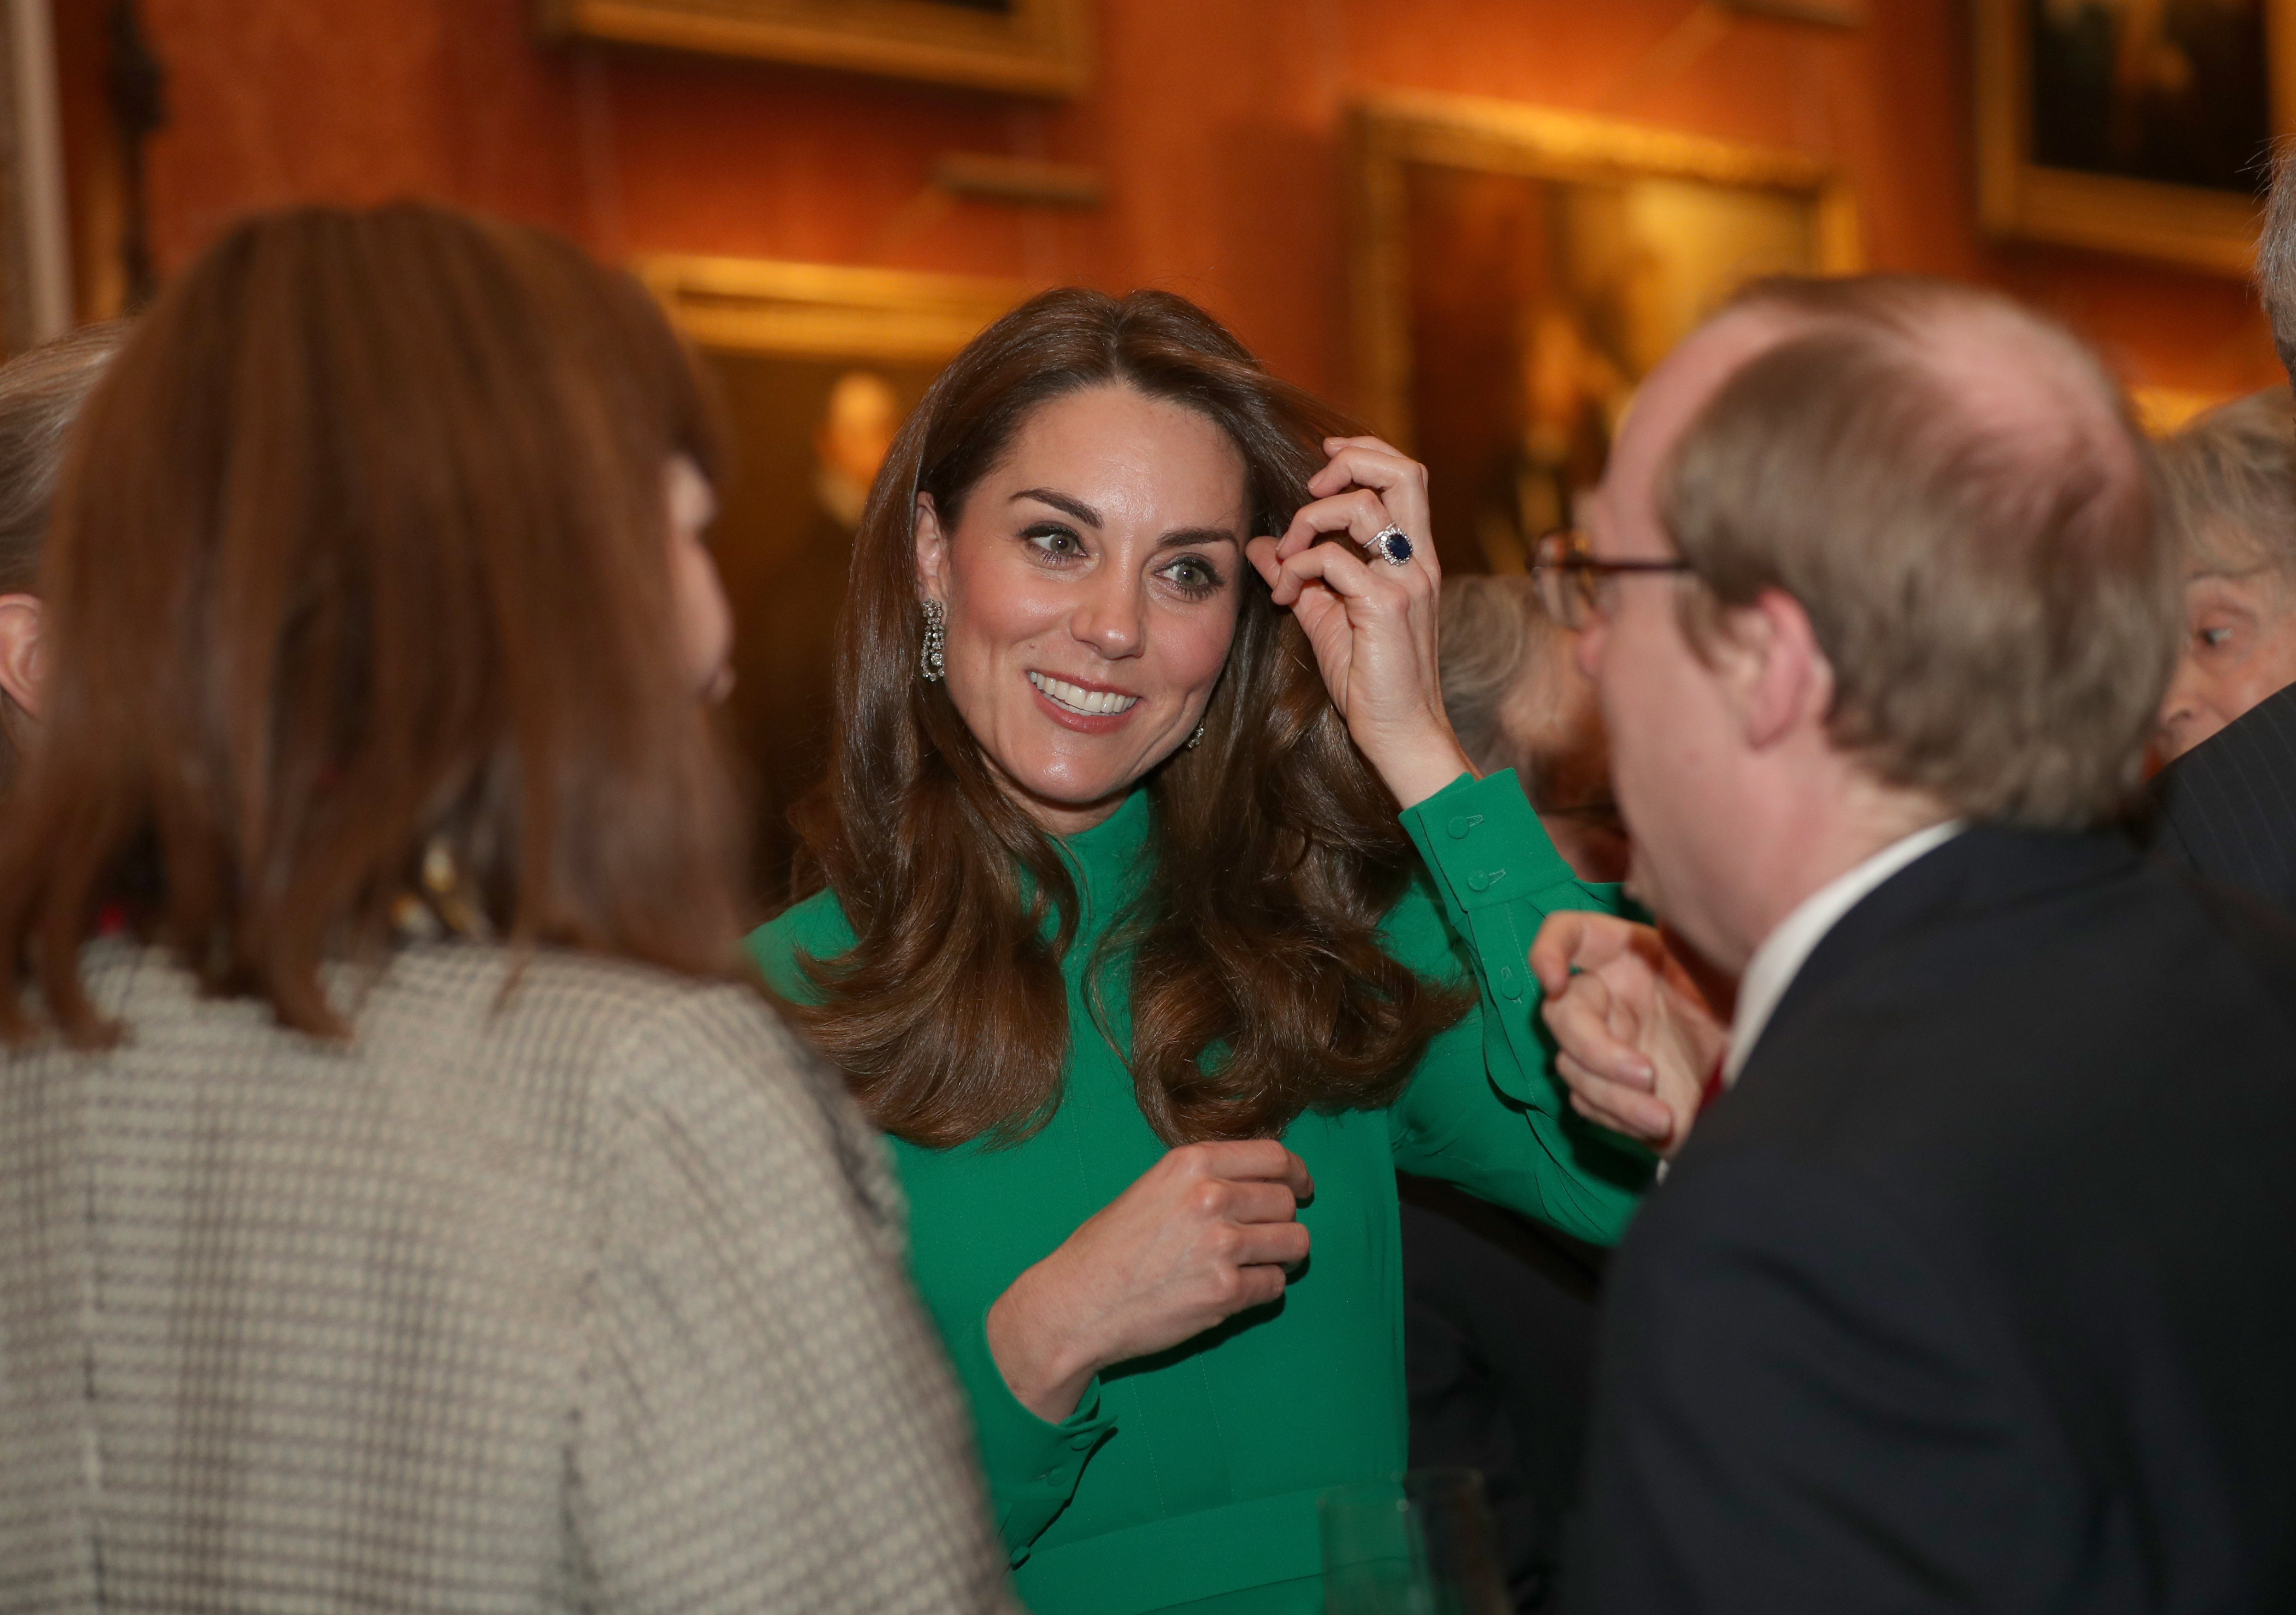 Kate Middleton attends NATO Reception for world leaders in London, England on December 3, 2019 | Photo: Getty Images